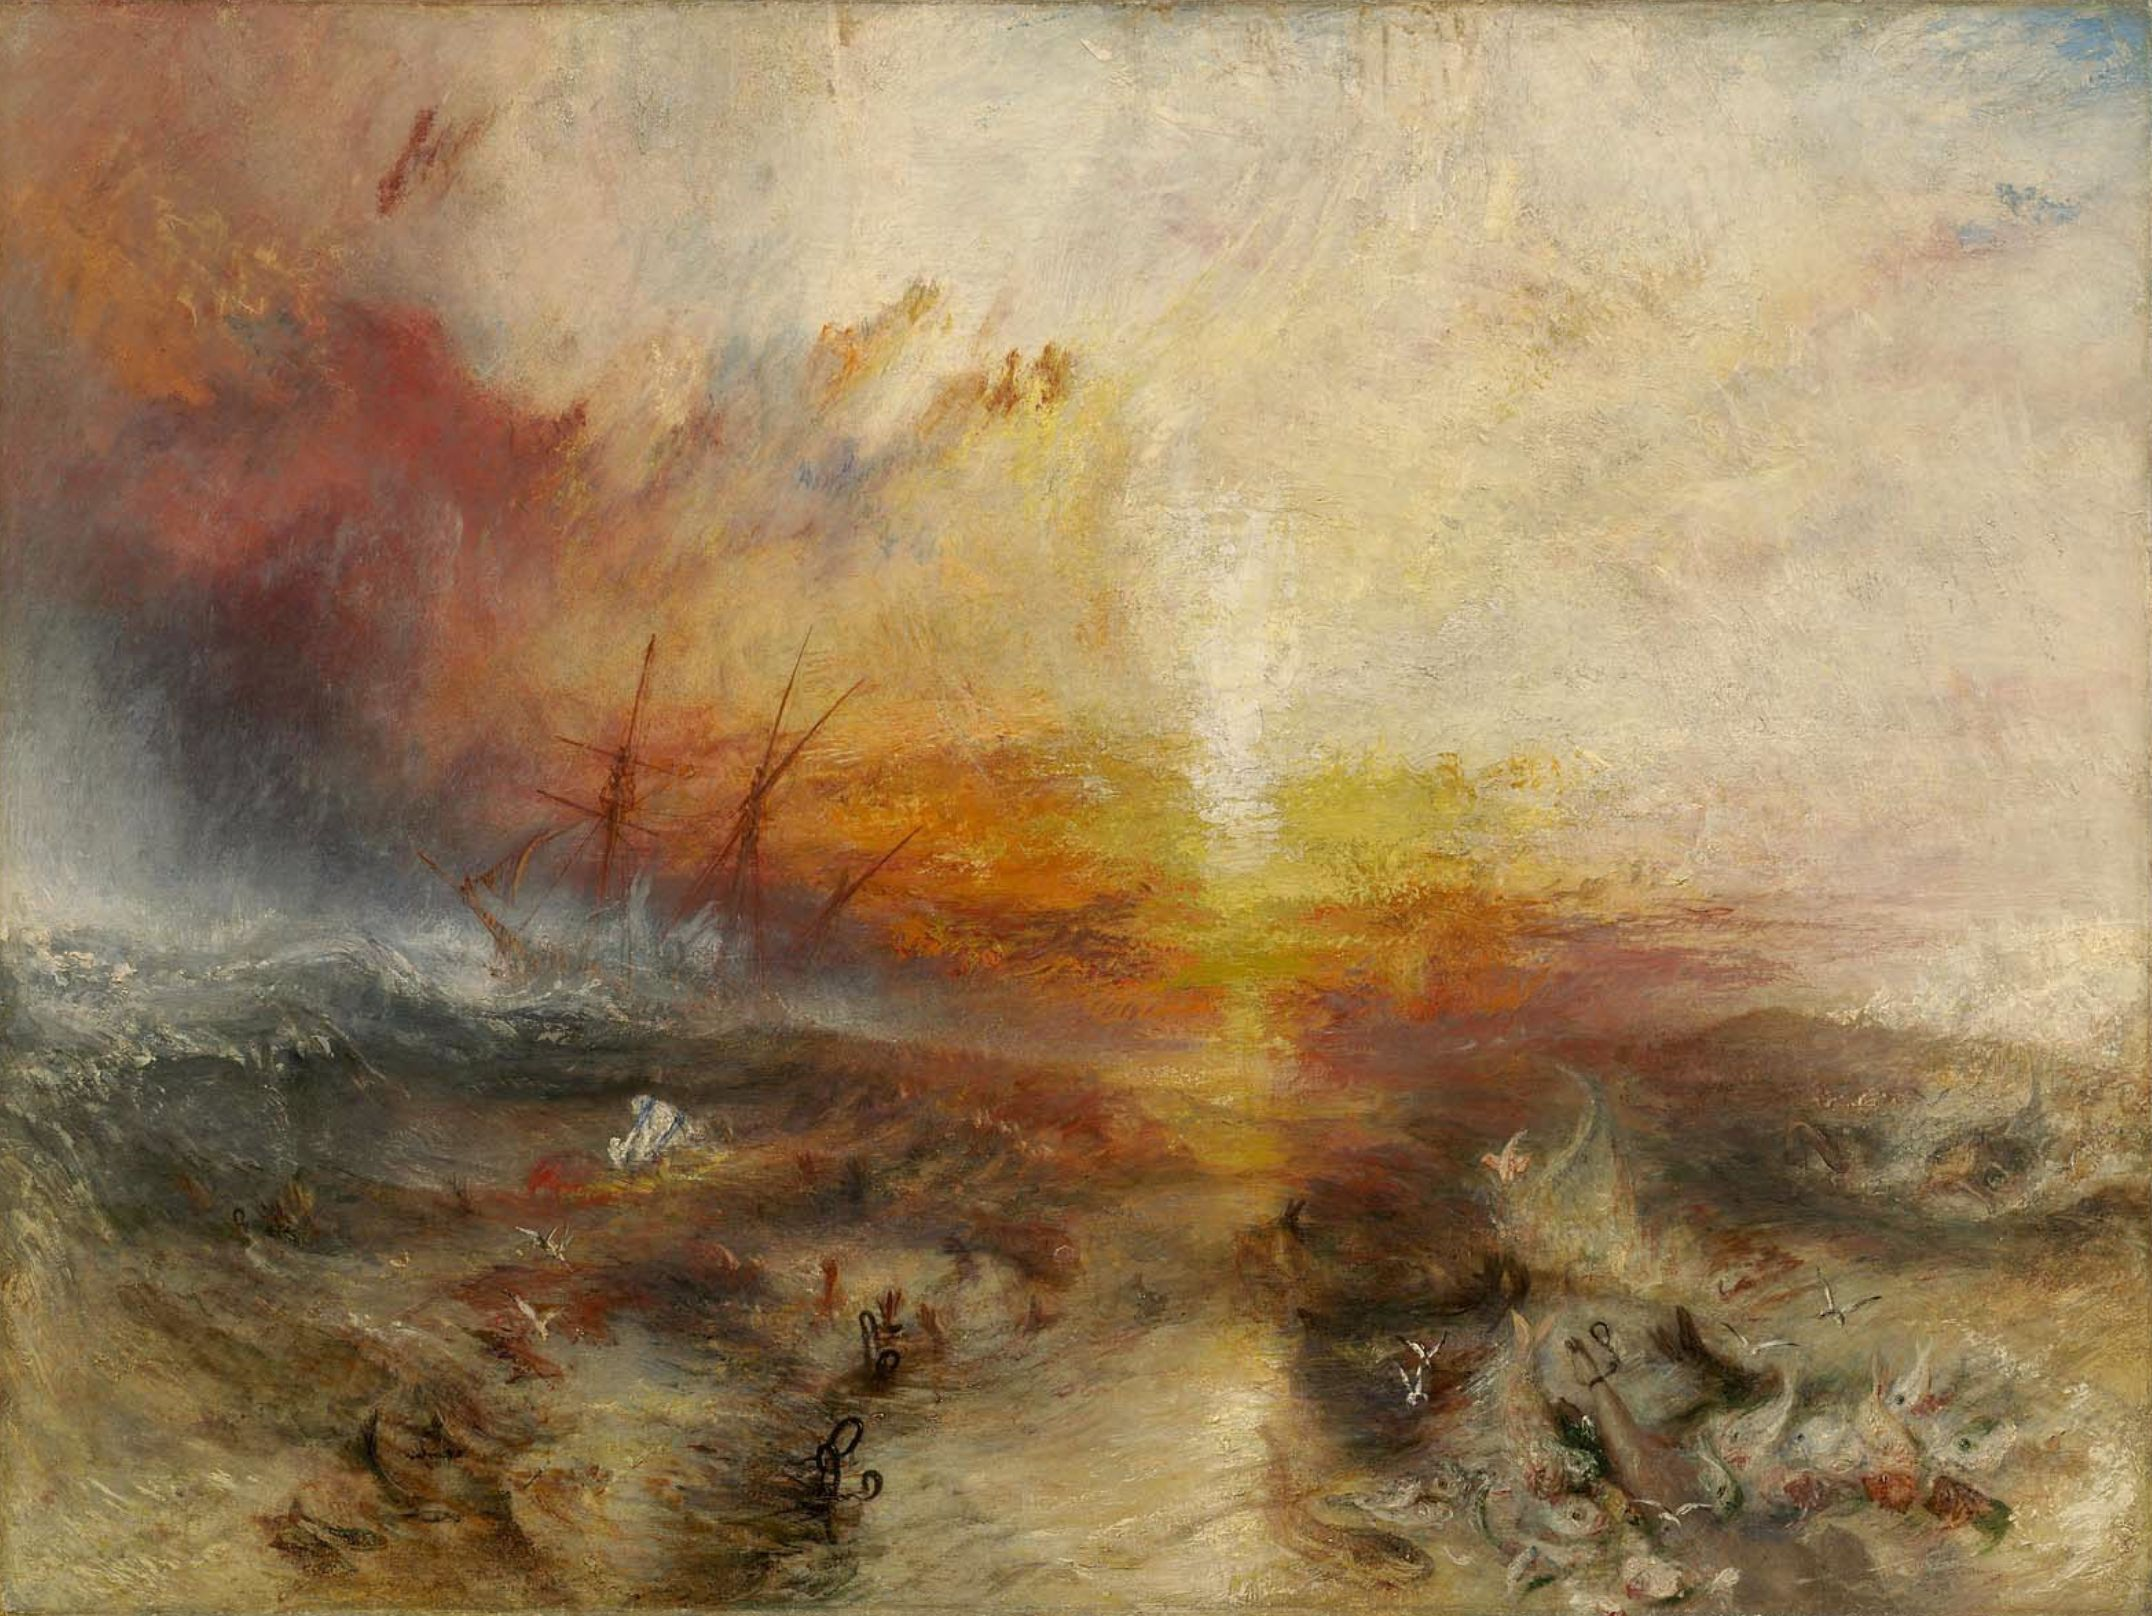 The Slave Ship, JMW Turner, 1840. Image credit: Wikimedia Commons